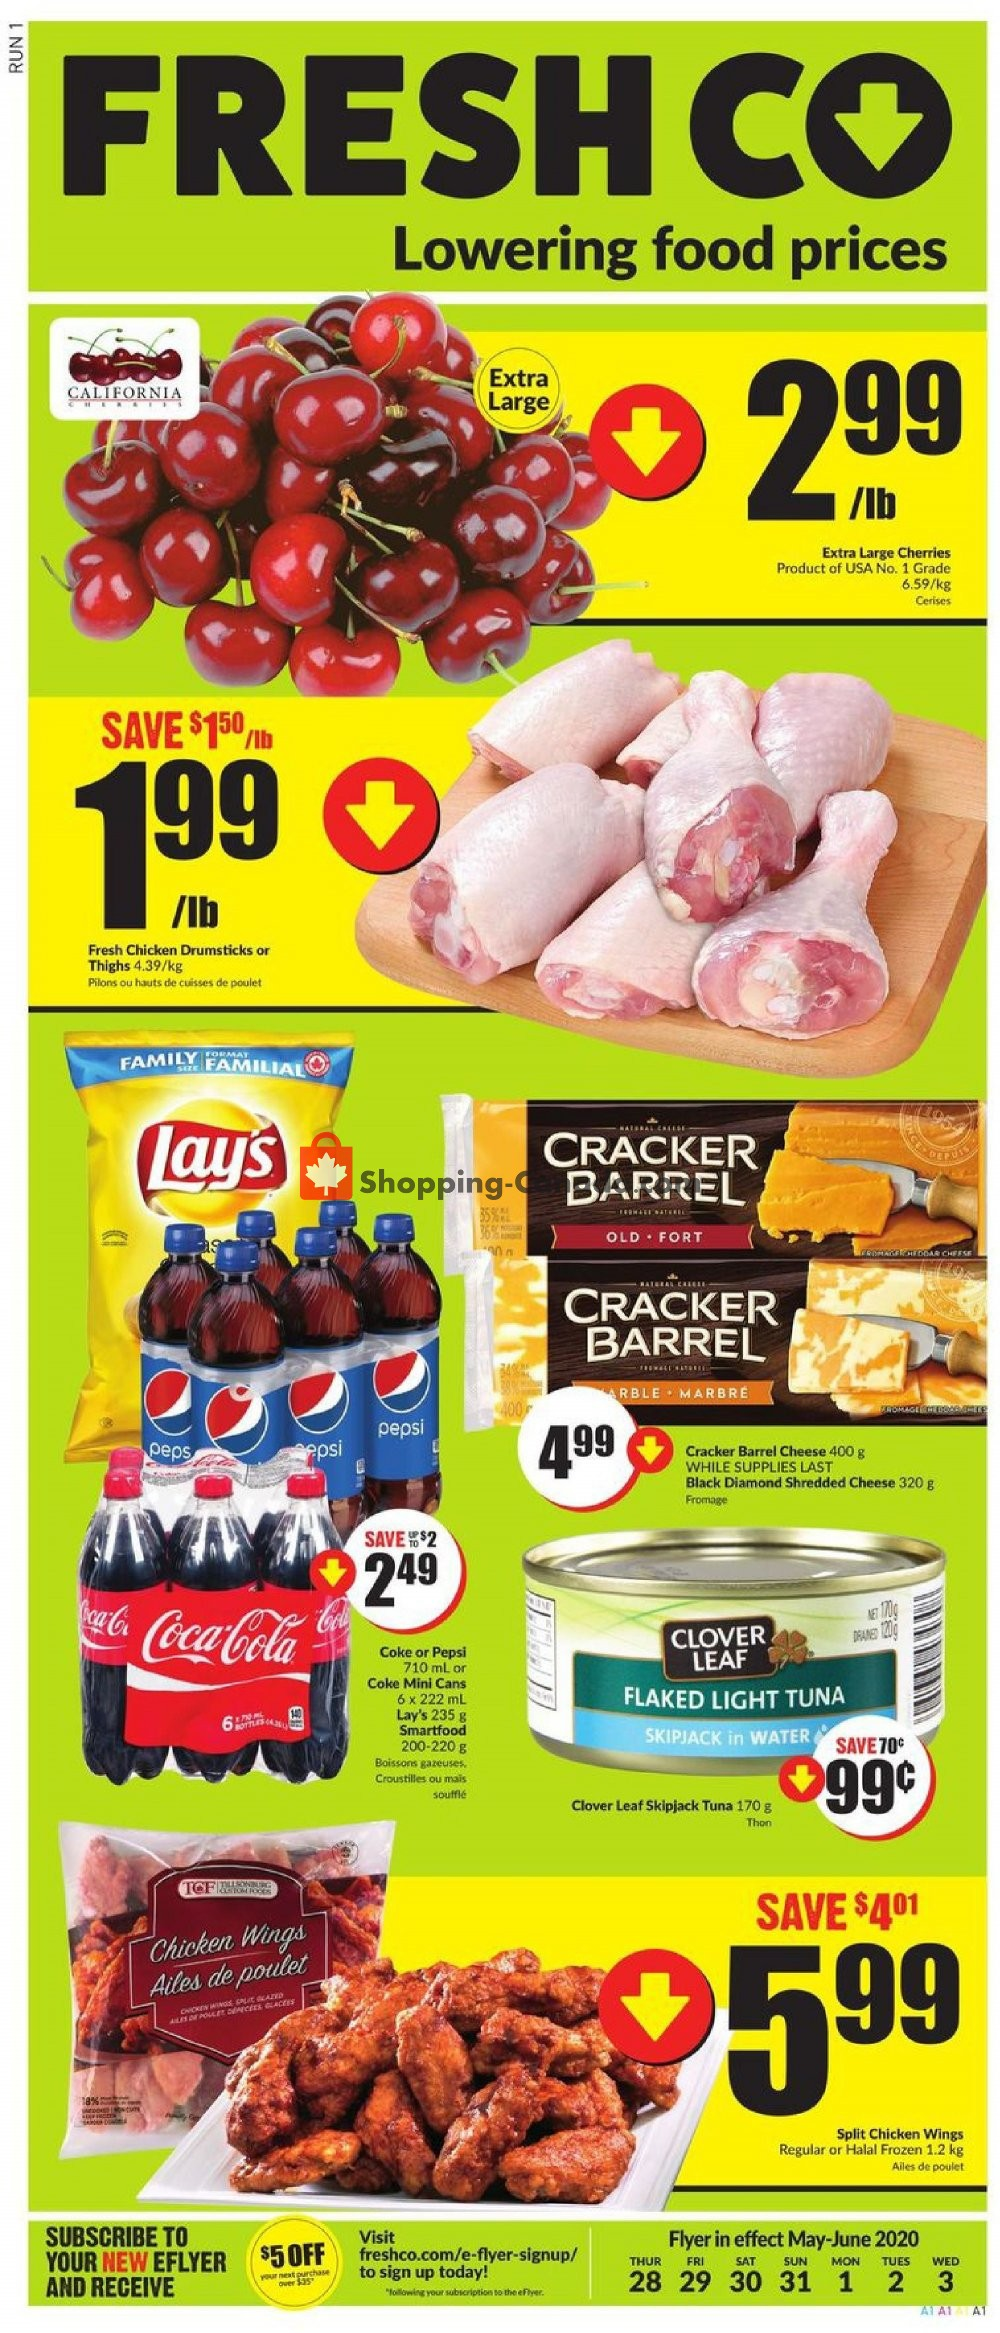 Flyer FreshCo Canada - from Thursday May 28, 2020 to Wednesday June 3, 2020